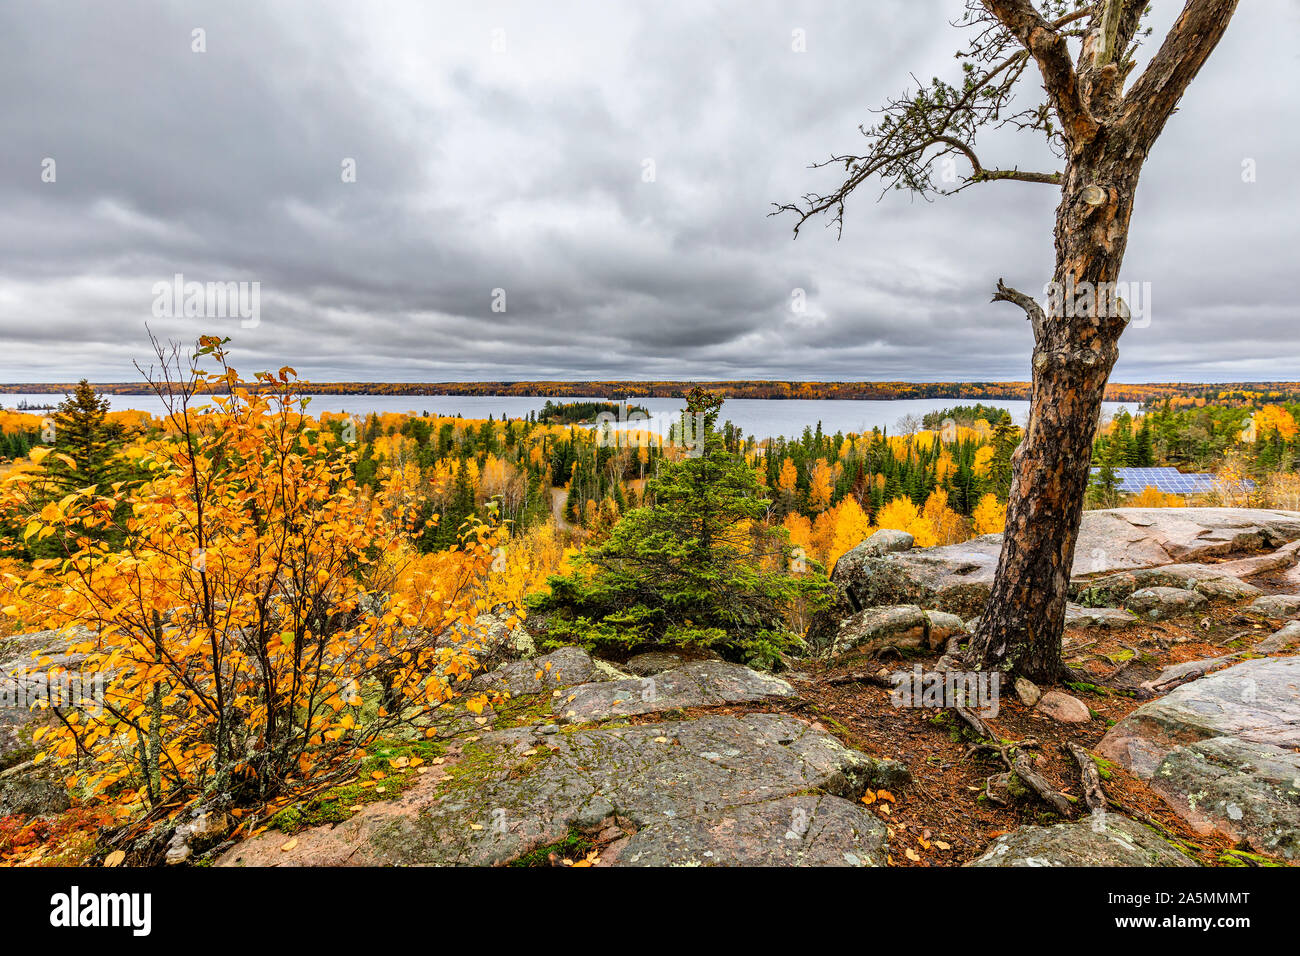 Top of the world trail overlook, In autumn, Whiteshell Provincial Park, Manitoba, Canada. Stock Photo